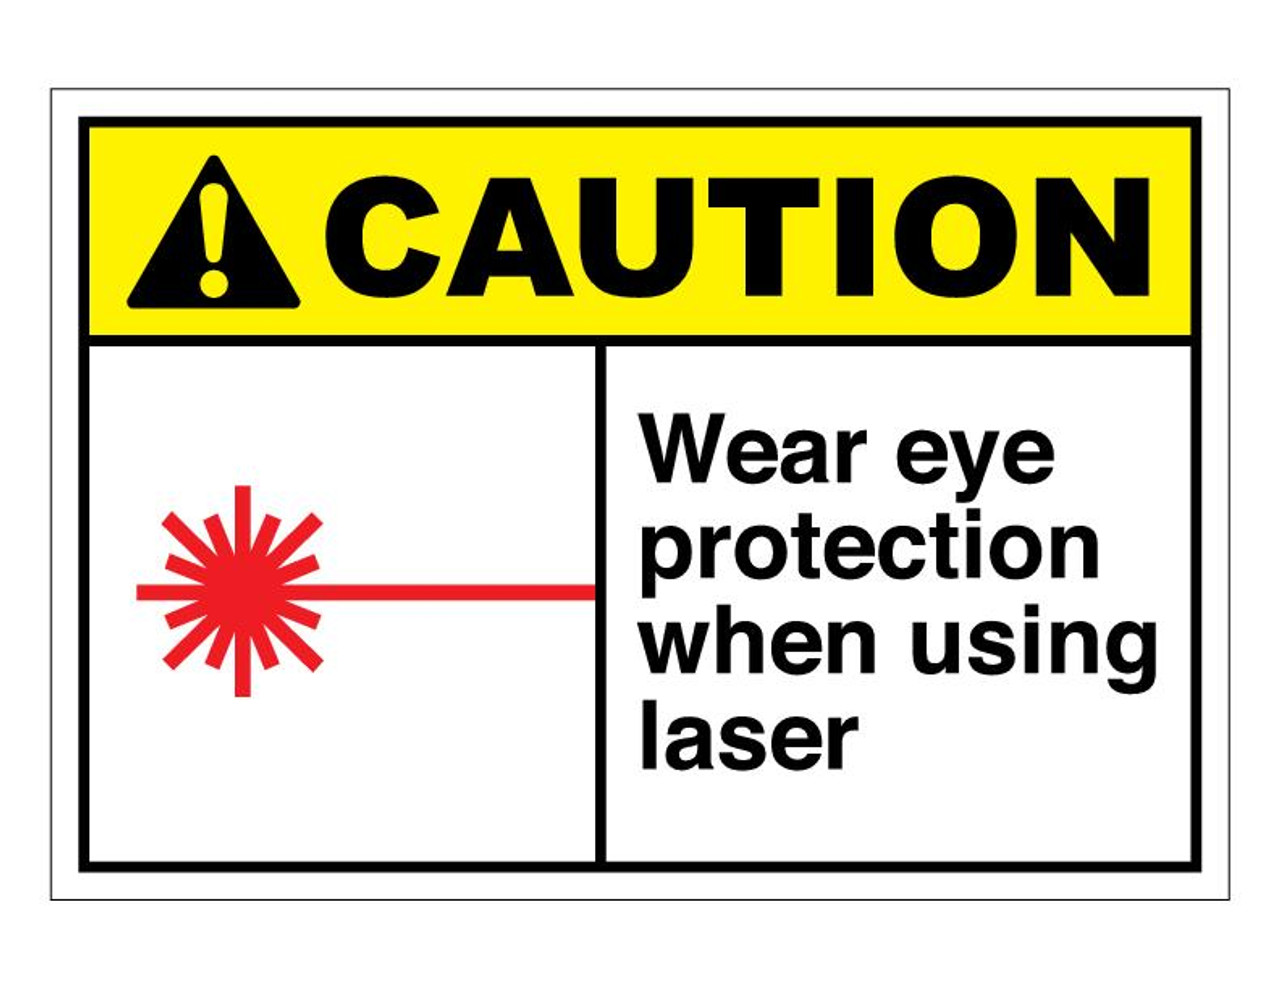 ANSI Caution Wear Eye Protection When Using Laser